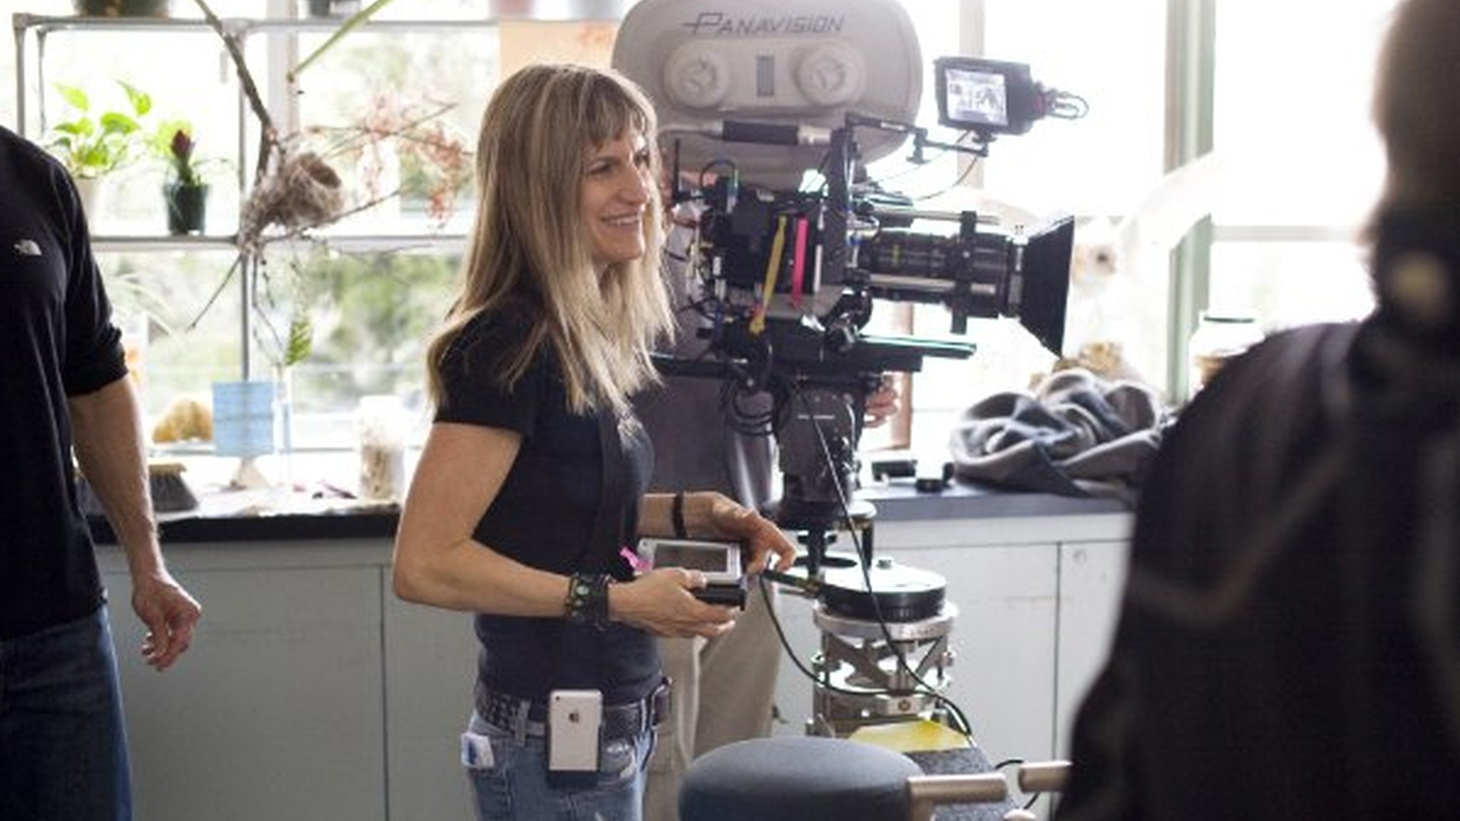 The Directors Guild has taken its first official look at Hollywood and found a bastion of discrimination — especially when it comes to women. In the past two years, 82% of feature films, big and small, were directed by white males — with women in charge just 6% of the time. We hear about efforts to penetrate legendary secrecy and diversify an industry where choices are notoriously subjective.